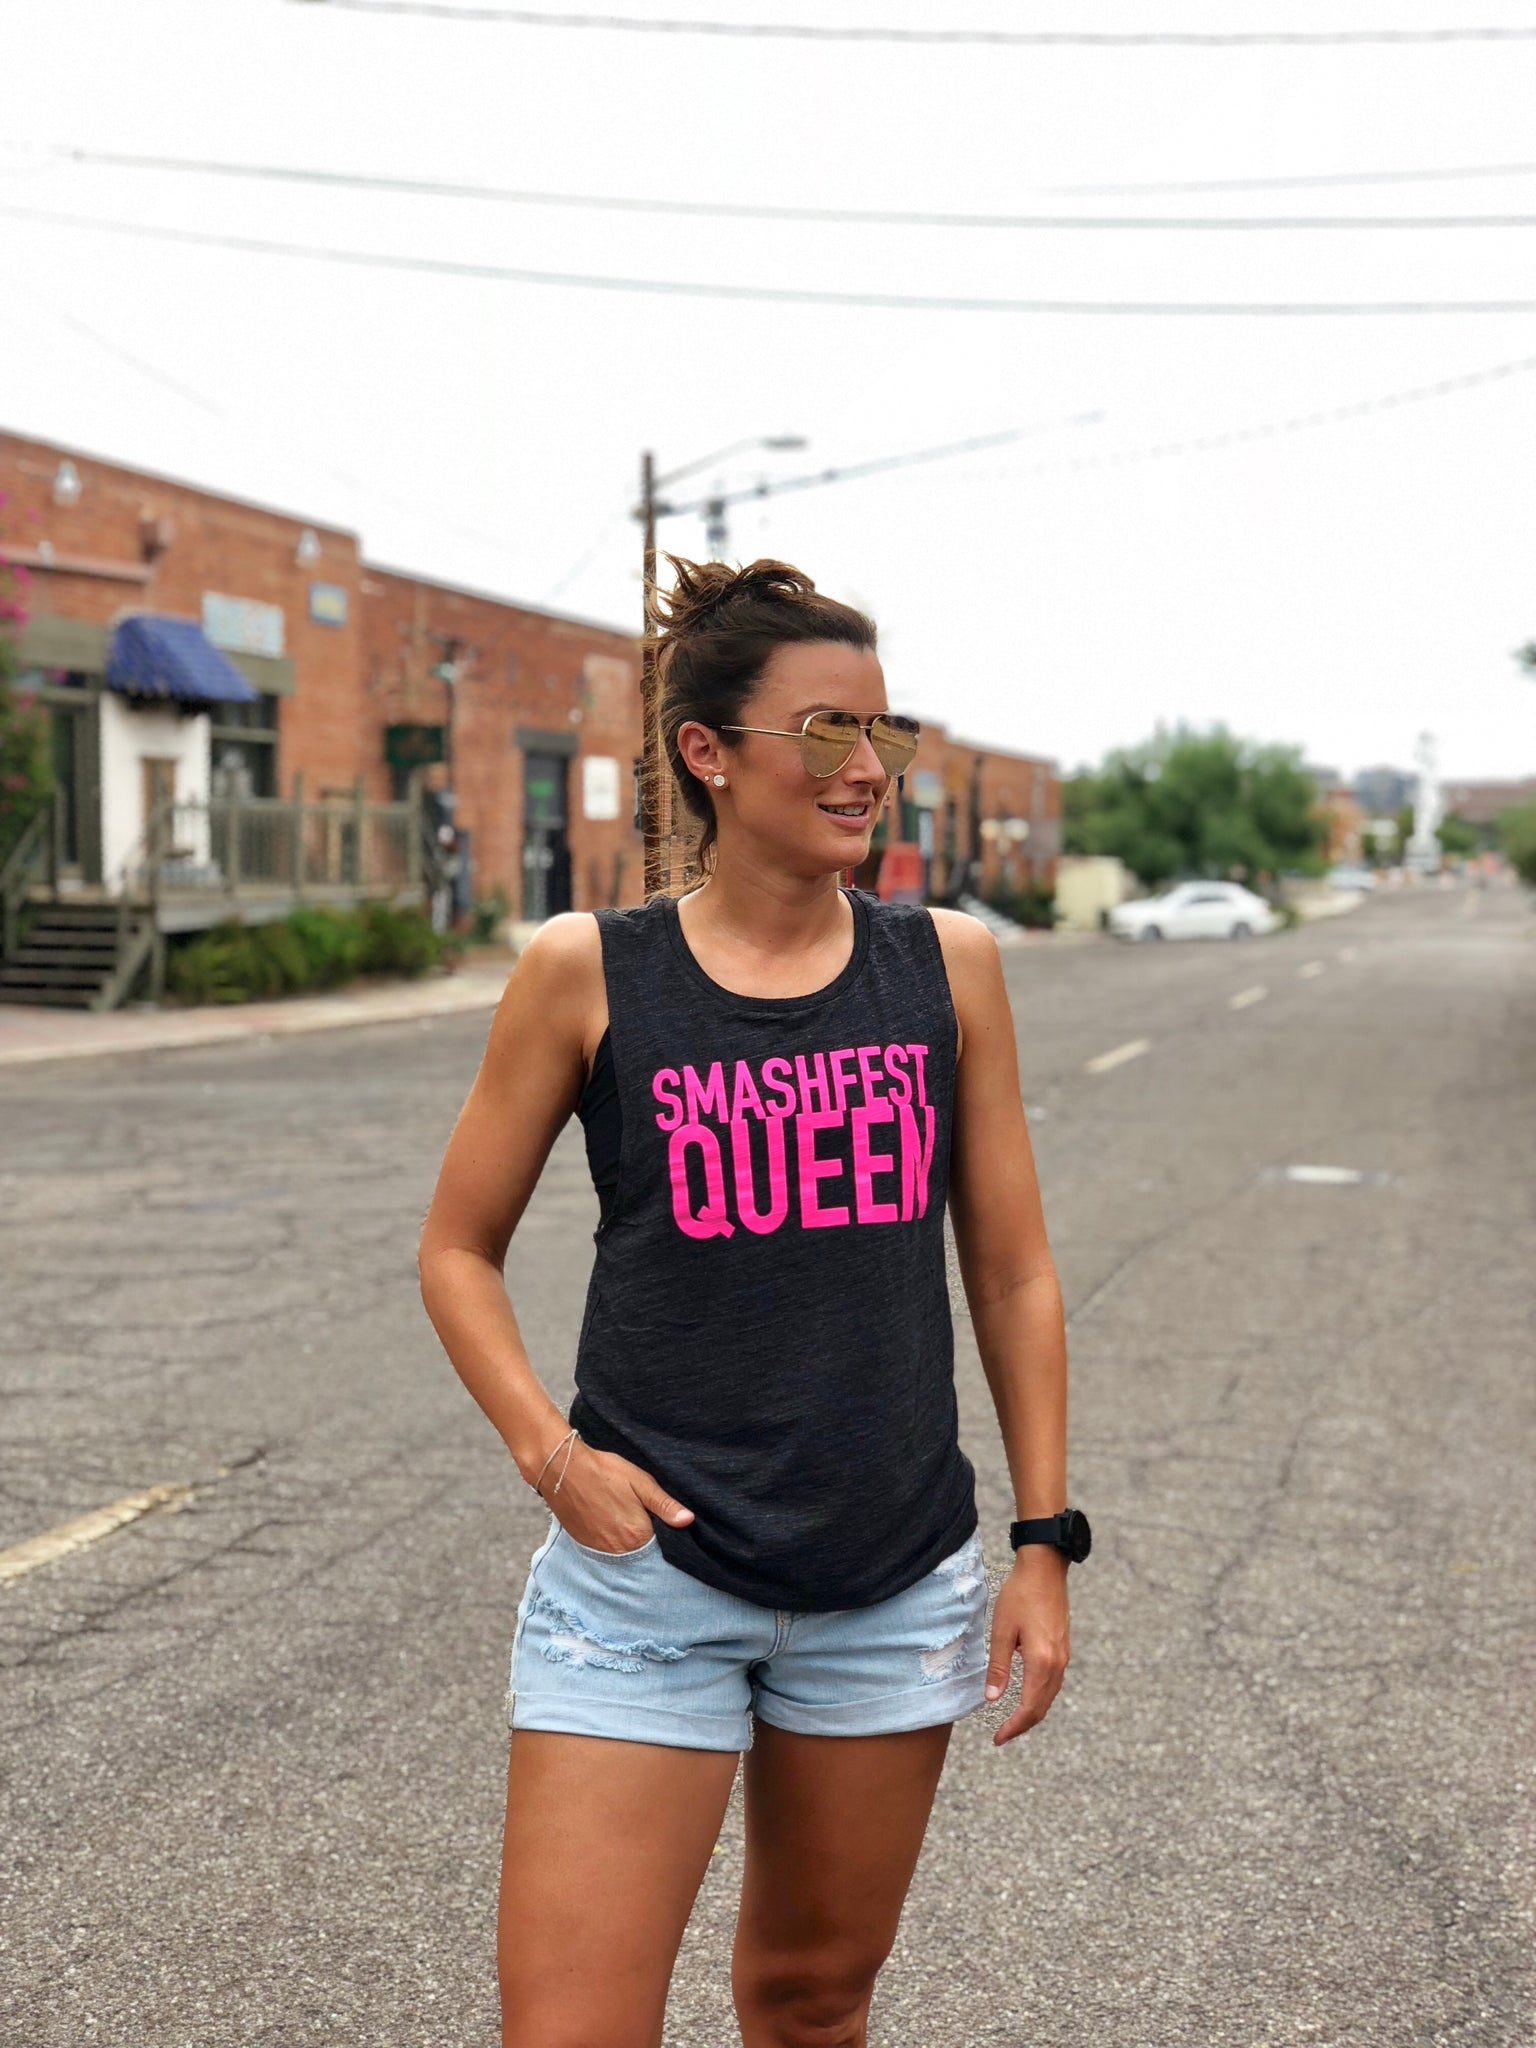 Smashfest Queen Muscle Tank - Charcoal with Fluro Pink